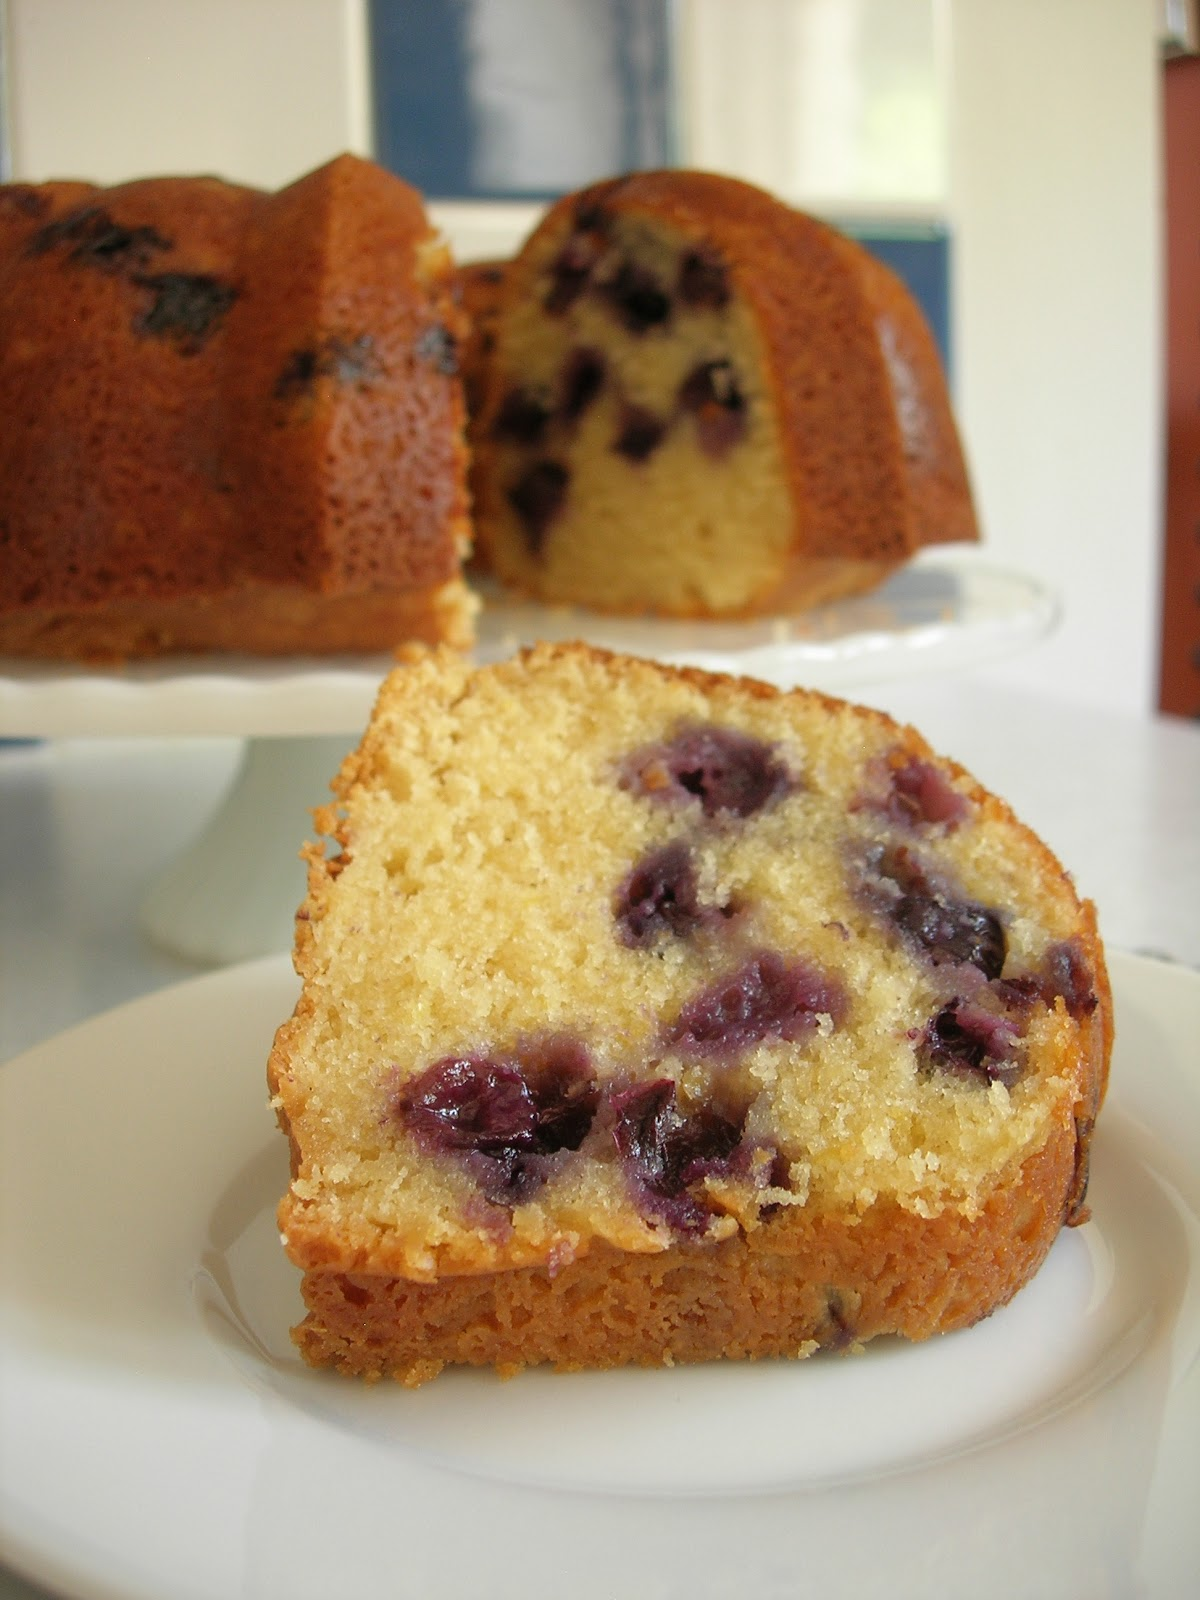 My Little Bungalow: Blueberry-Lemon Bundt Cake